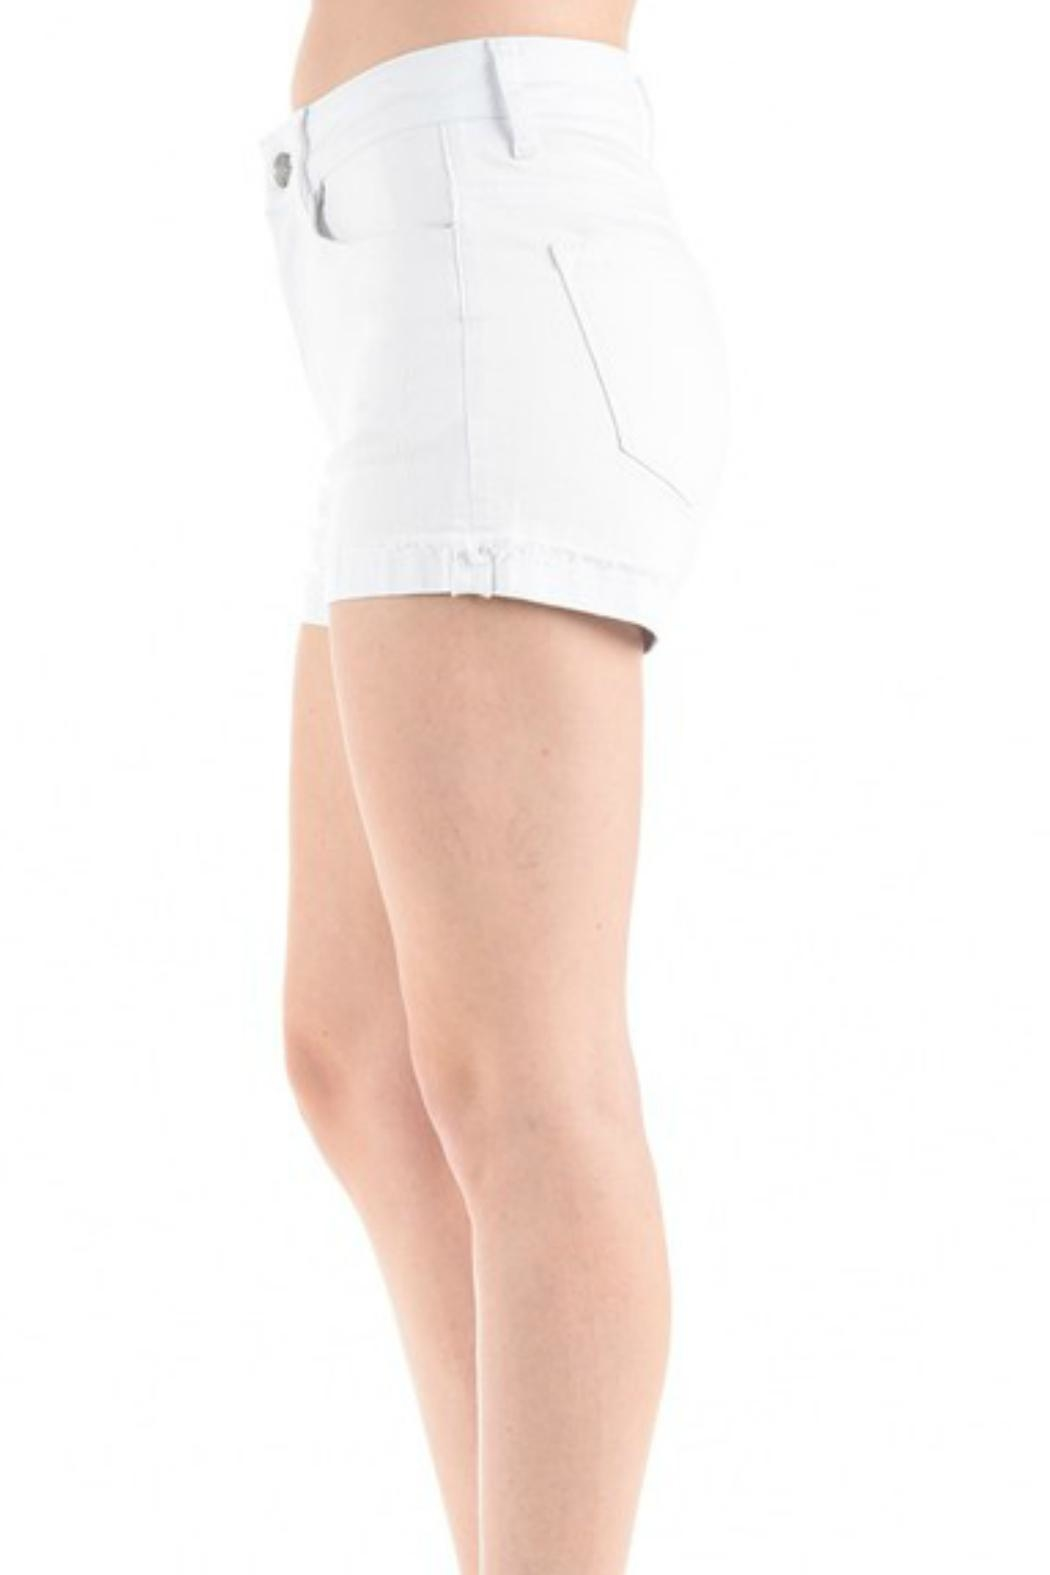 Imagine That White Jean Shorts - Side Cropped Image